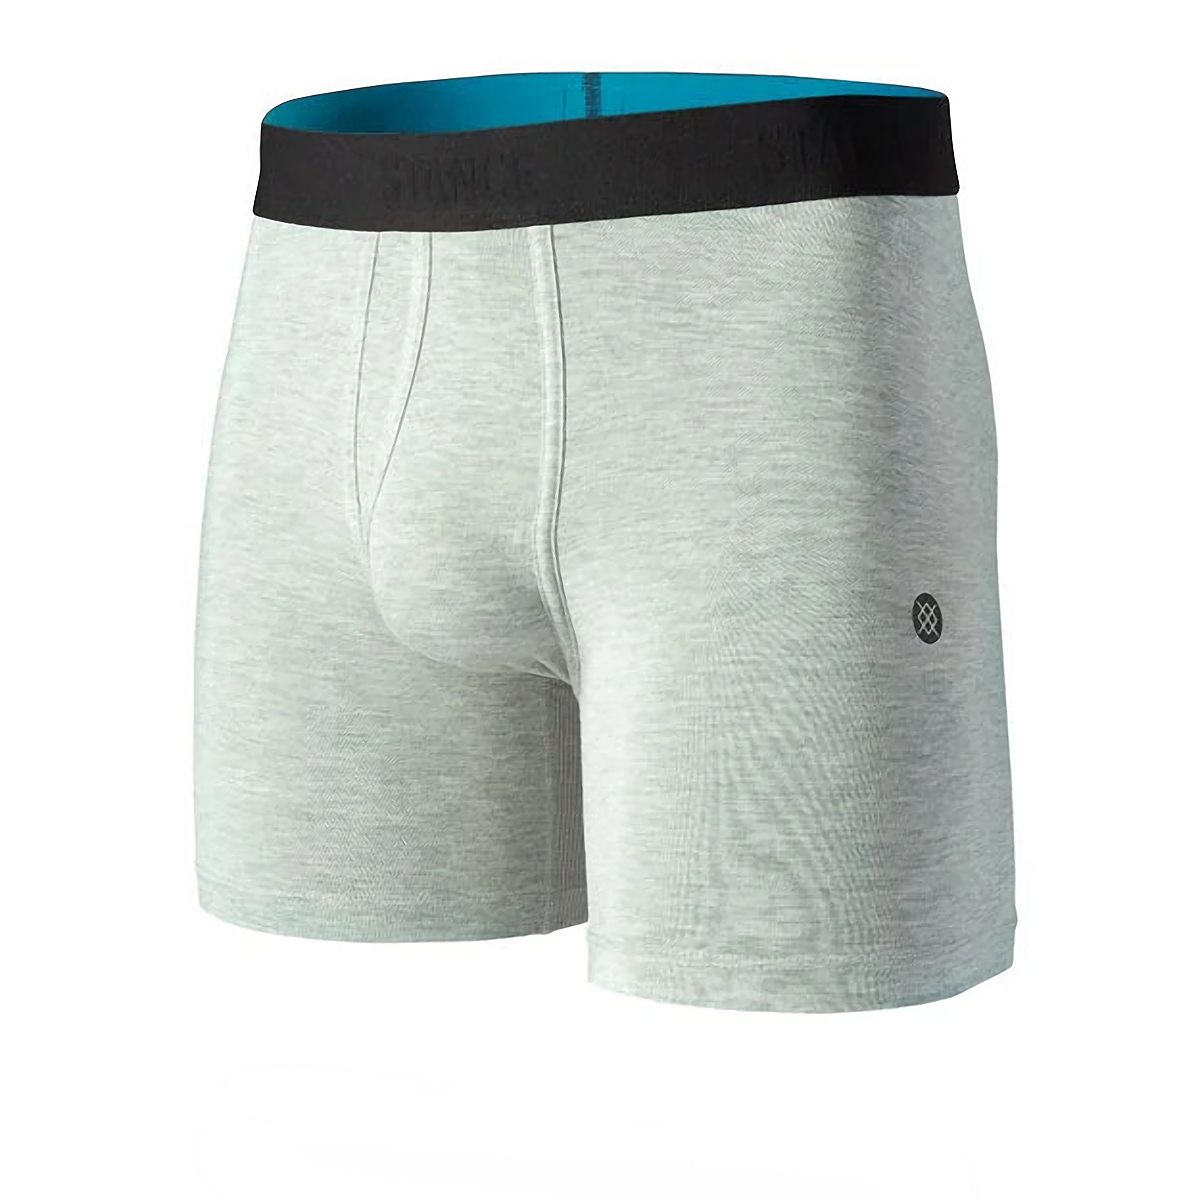 Men's Stance Staple ST 6in Boxer Briefs - Color: Heathergrey - Size: S, Heathergrey, large, image 1